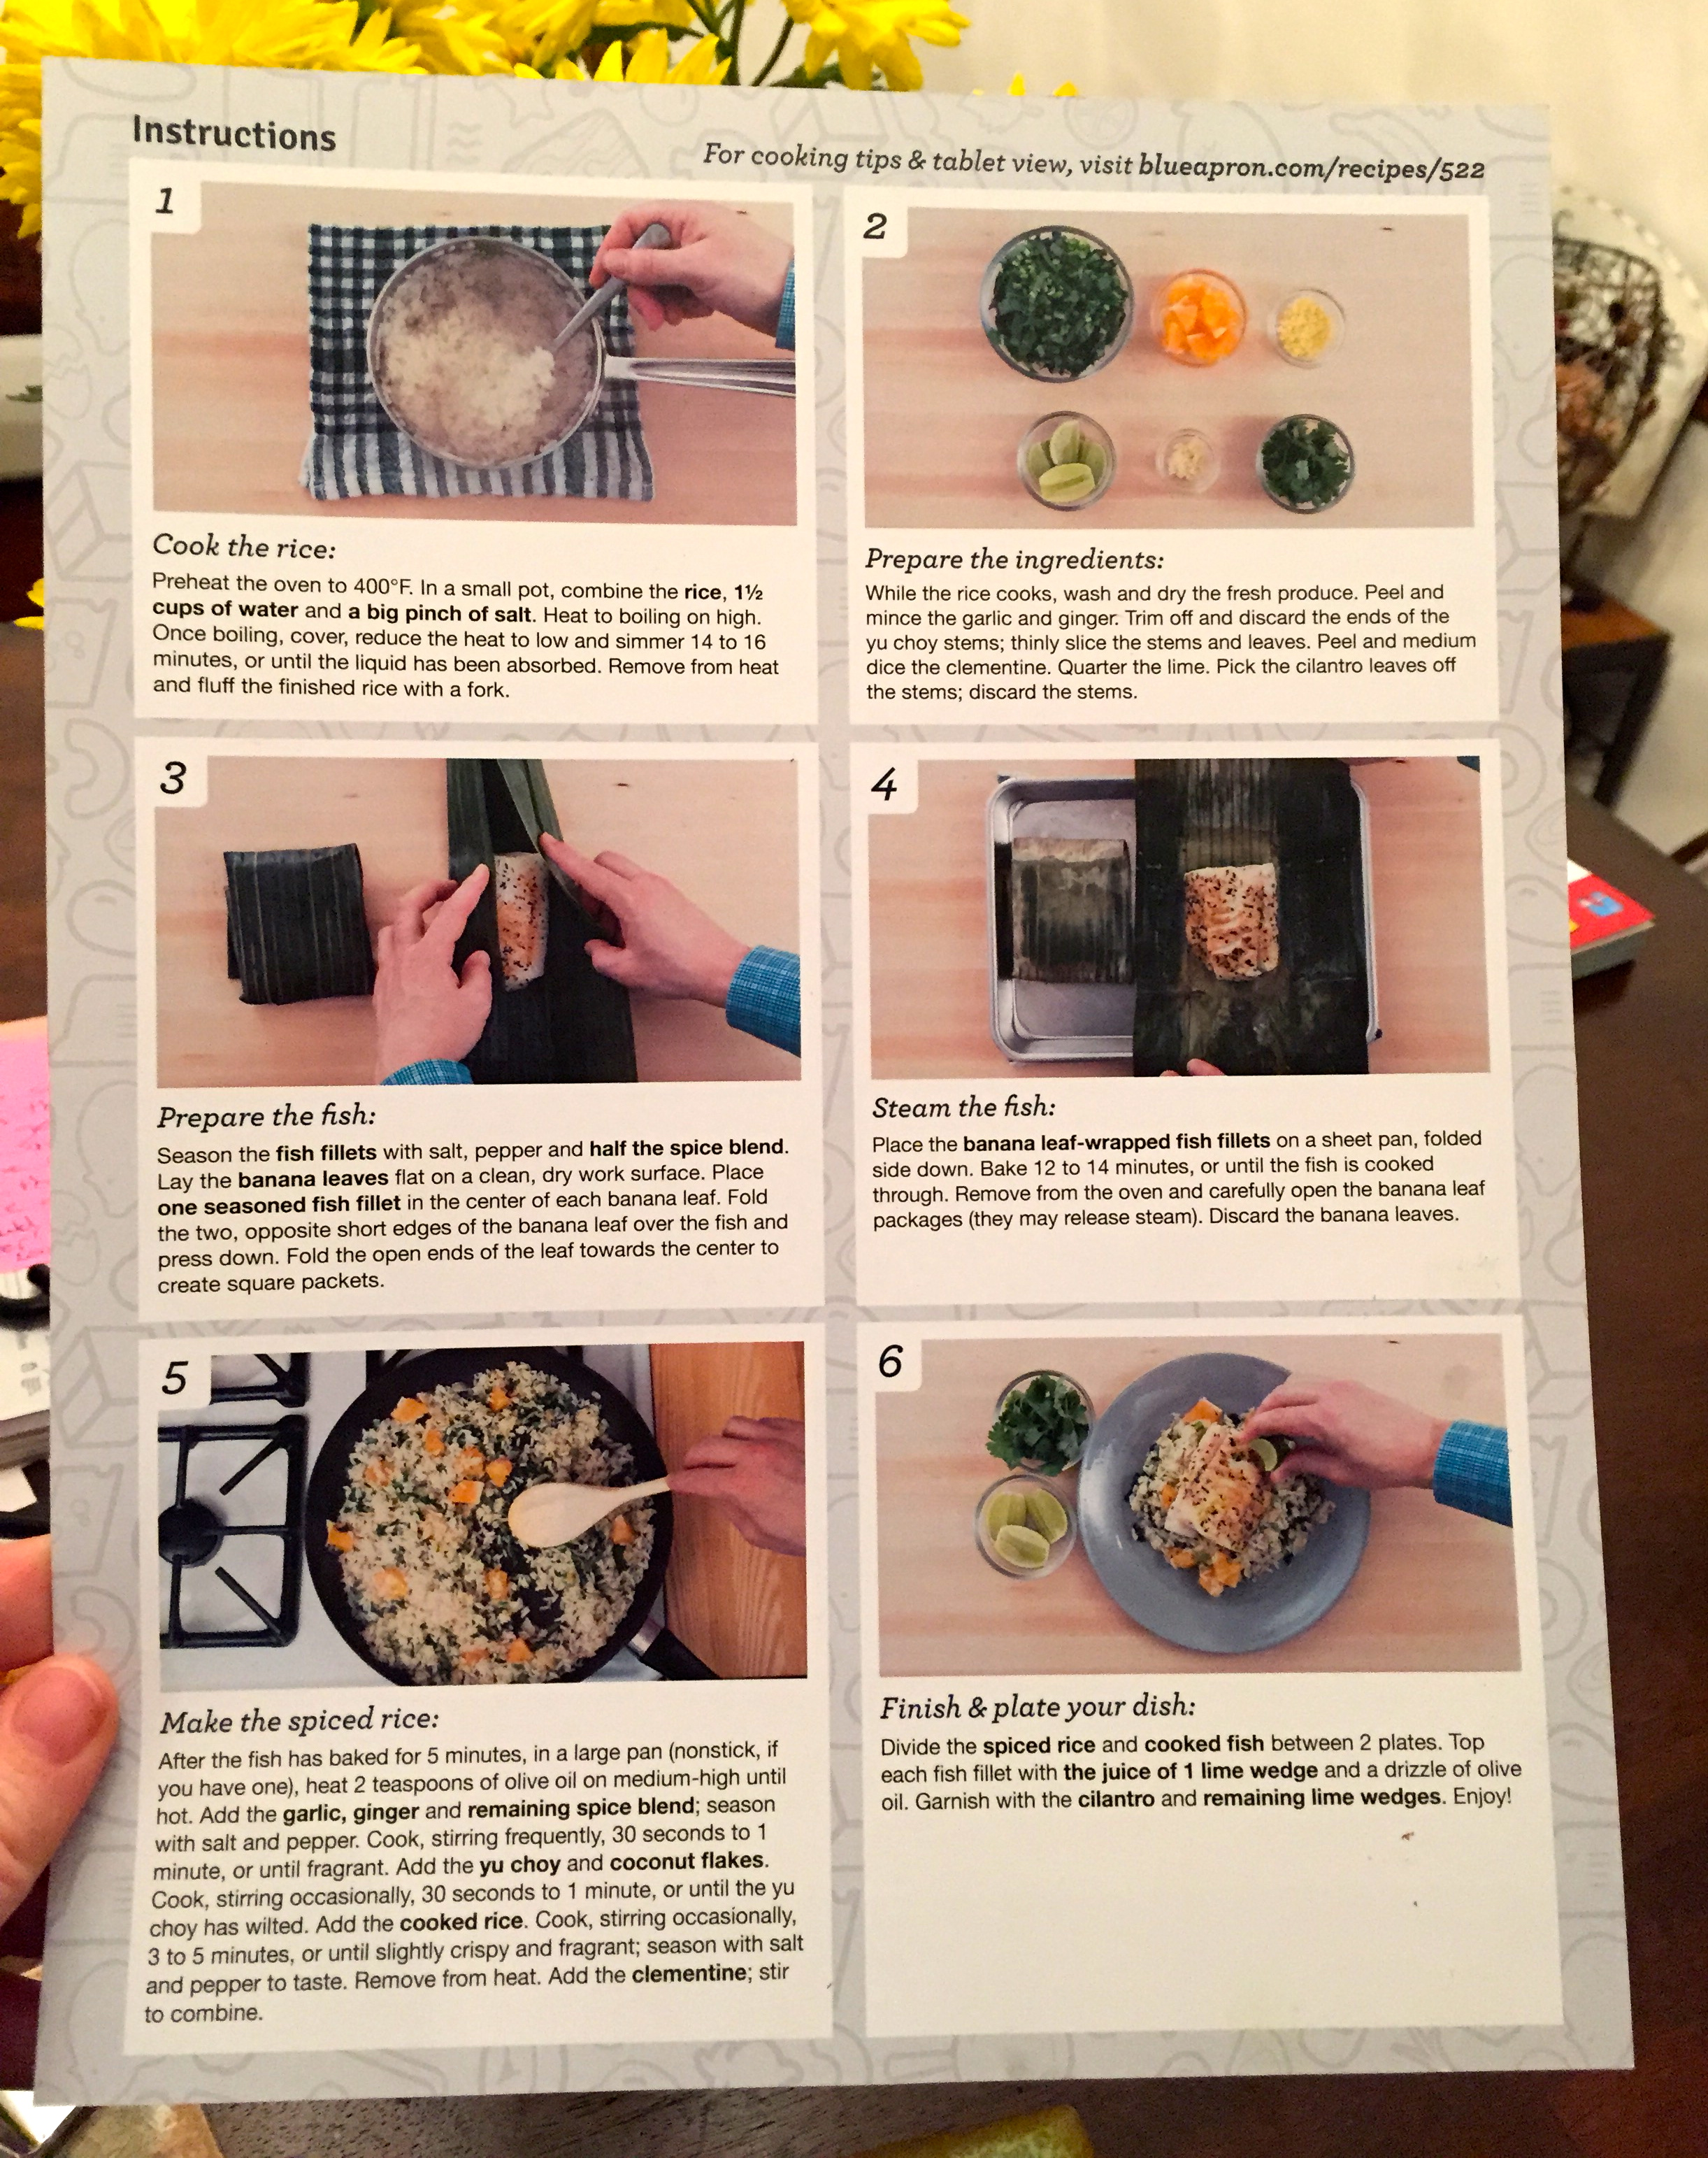 Blue apron quality - Pro High Quality Fresh Ingredients All Of The Ingredients I Received For Each Meal Were Fresh And Delicious I Was Especially Pleased With The Quality Of